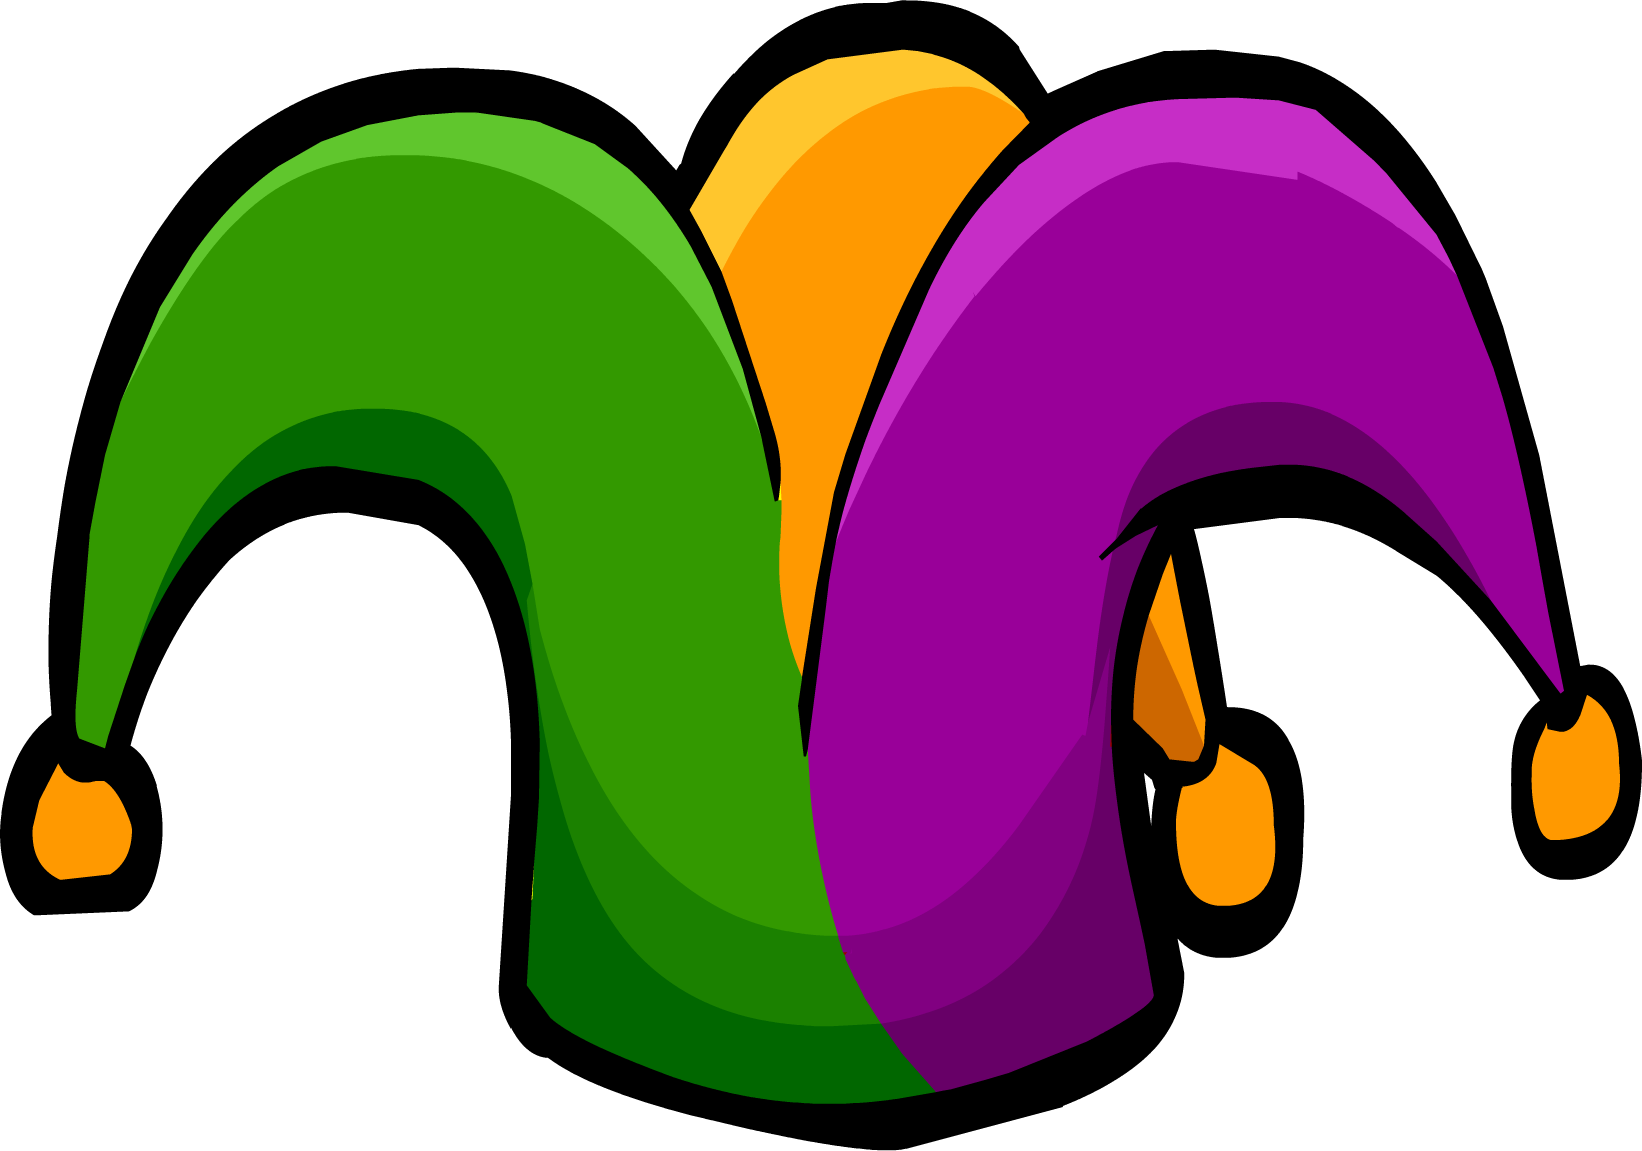 Joker hat png. Image court jester icon